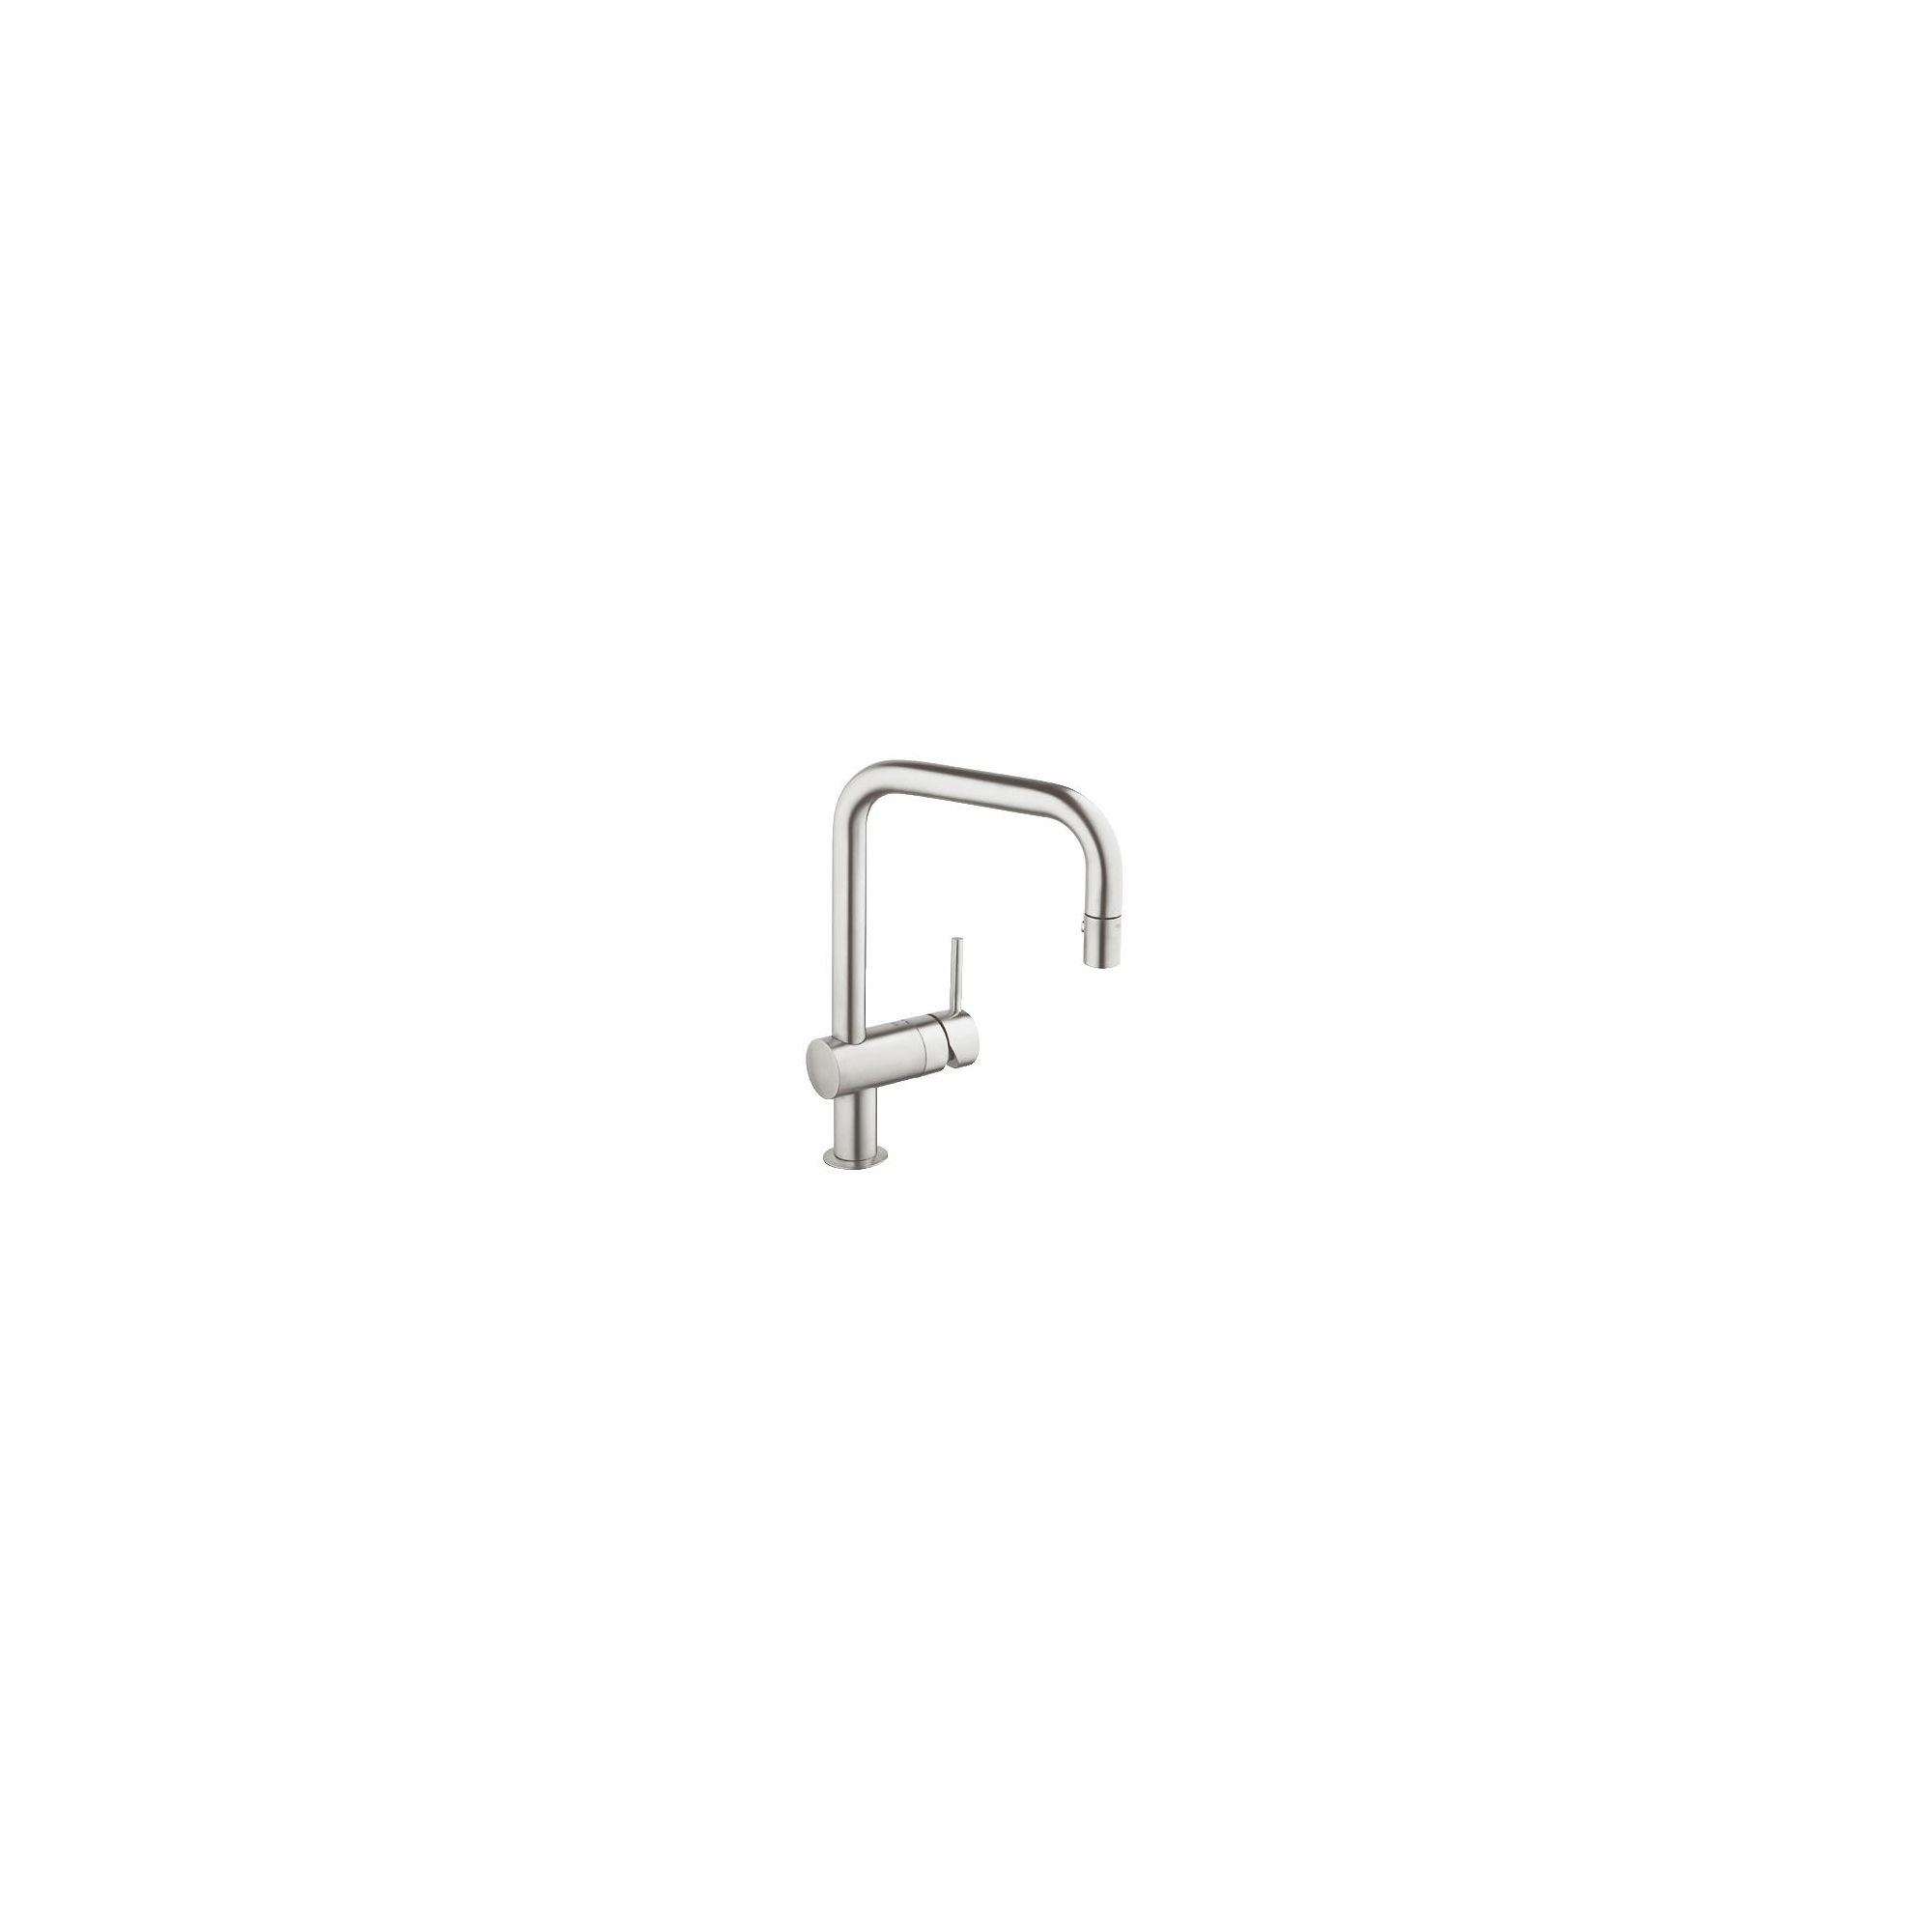 Grohe Minta Mono Sink Mixer Tap, U-Spout, Pull-Out Spray, Single Handle, SuperSteel at Tesco Direct